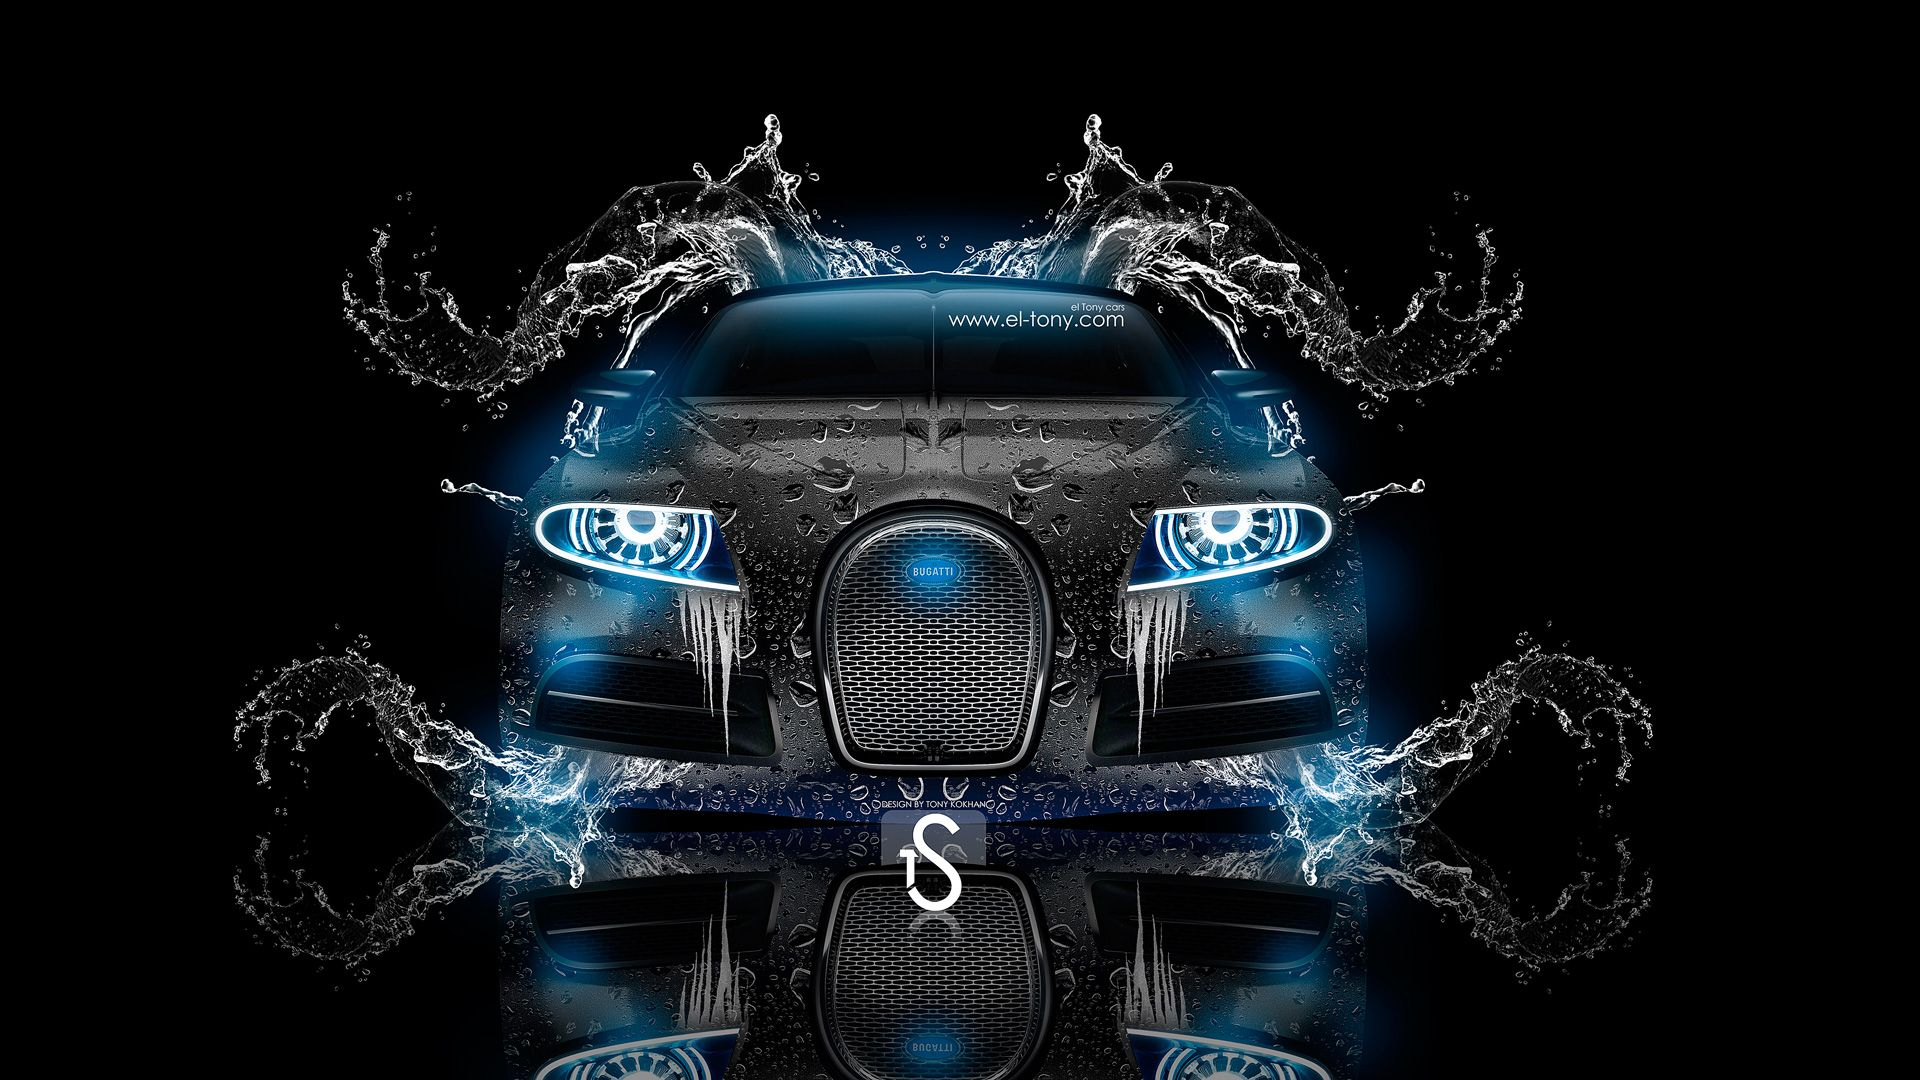 Neon Bugatti Wallpapers Top Free Neon Bugatti Backgrounds